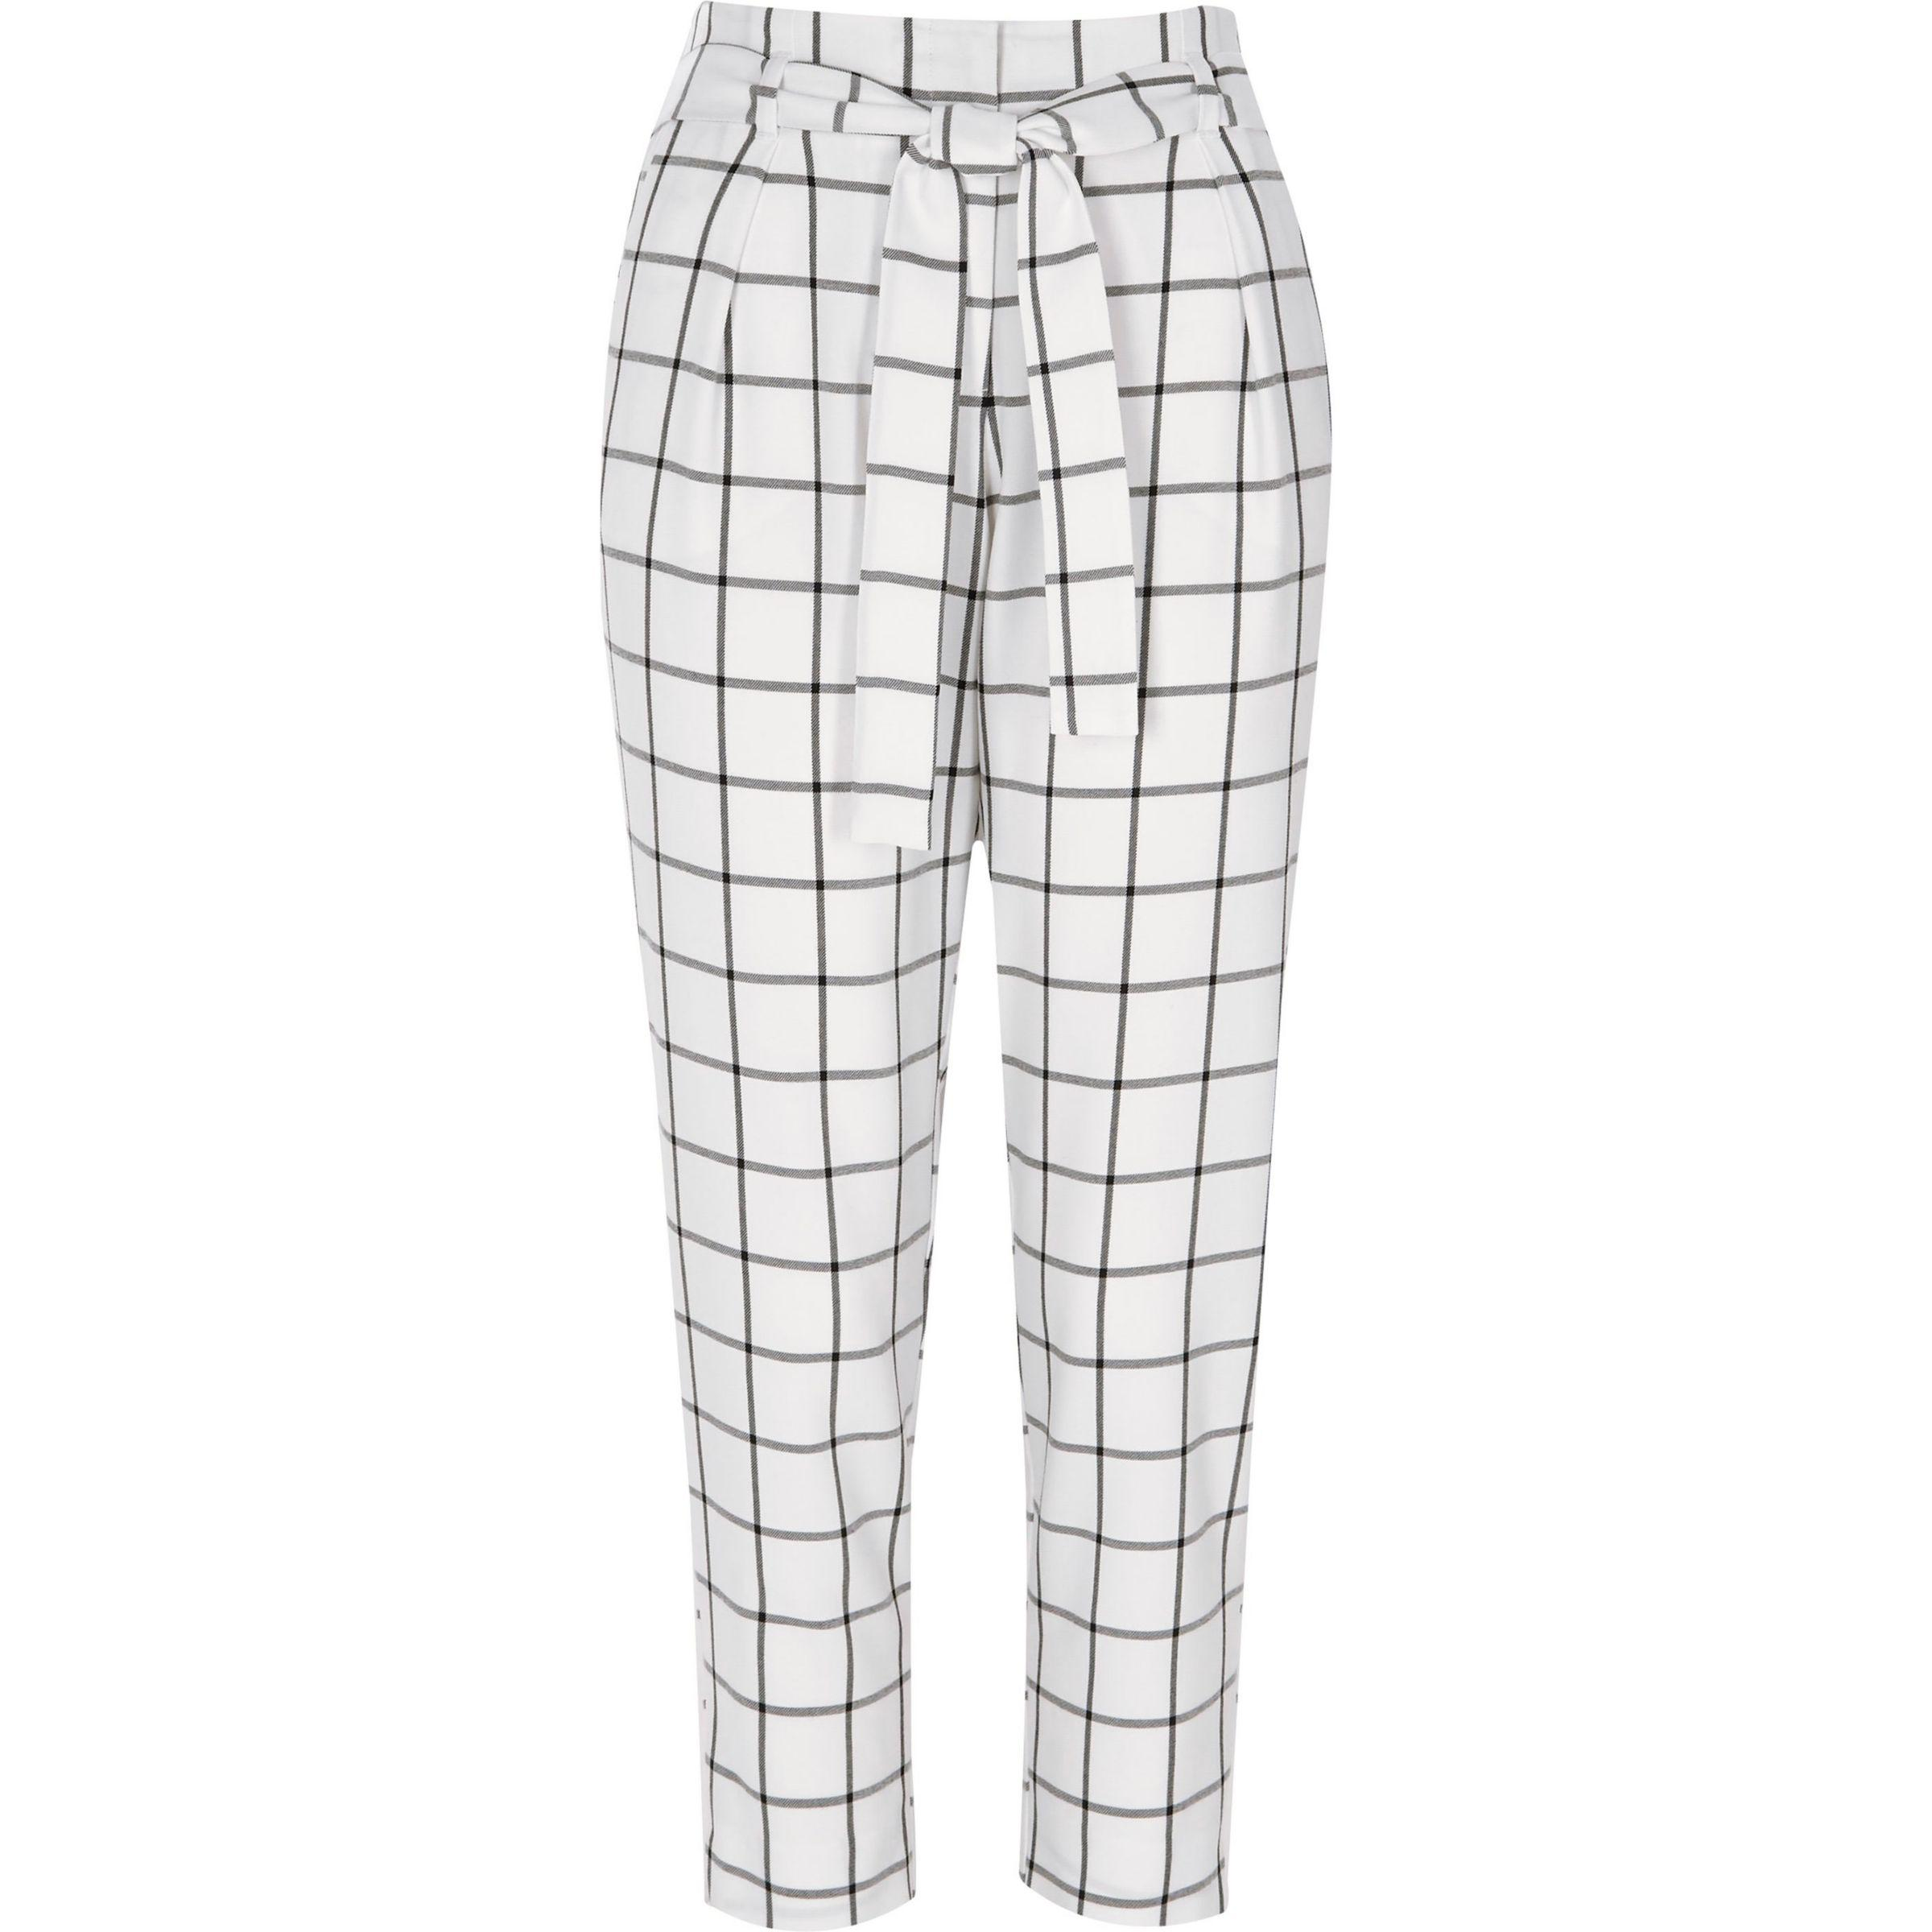 19645905f446fd River Island White Check Tie Waist Tapered Trousers in White - Lyst